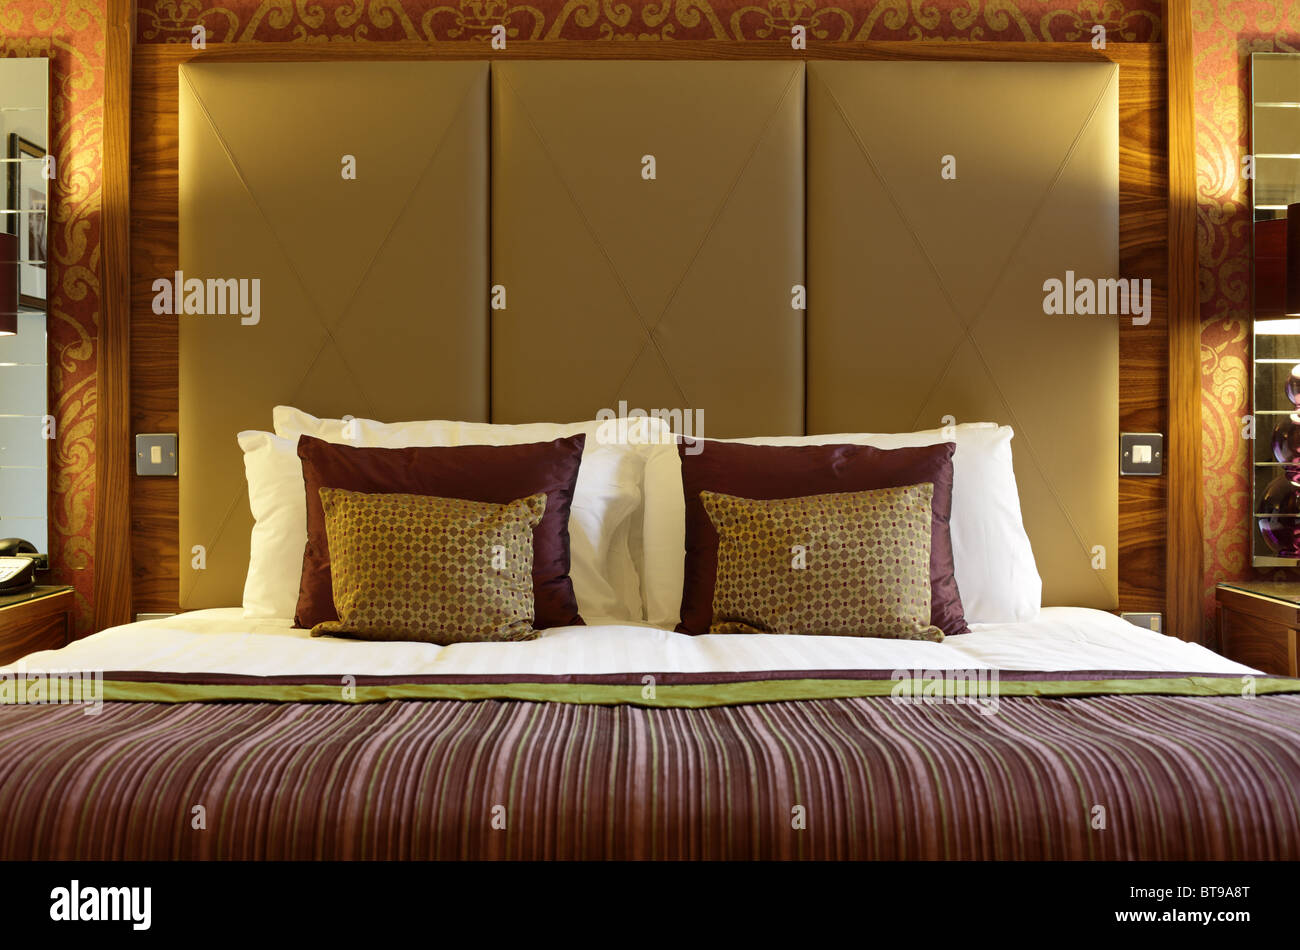 Luxurious hotel bed - Stock Image